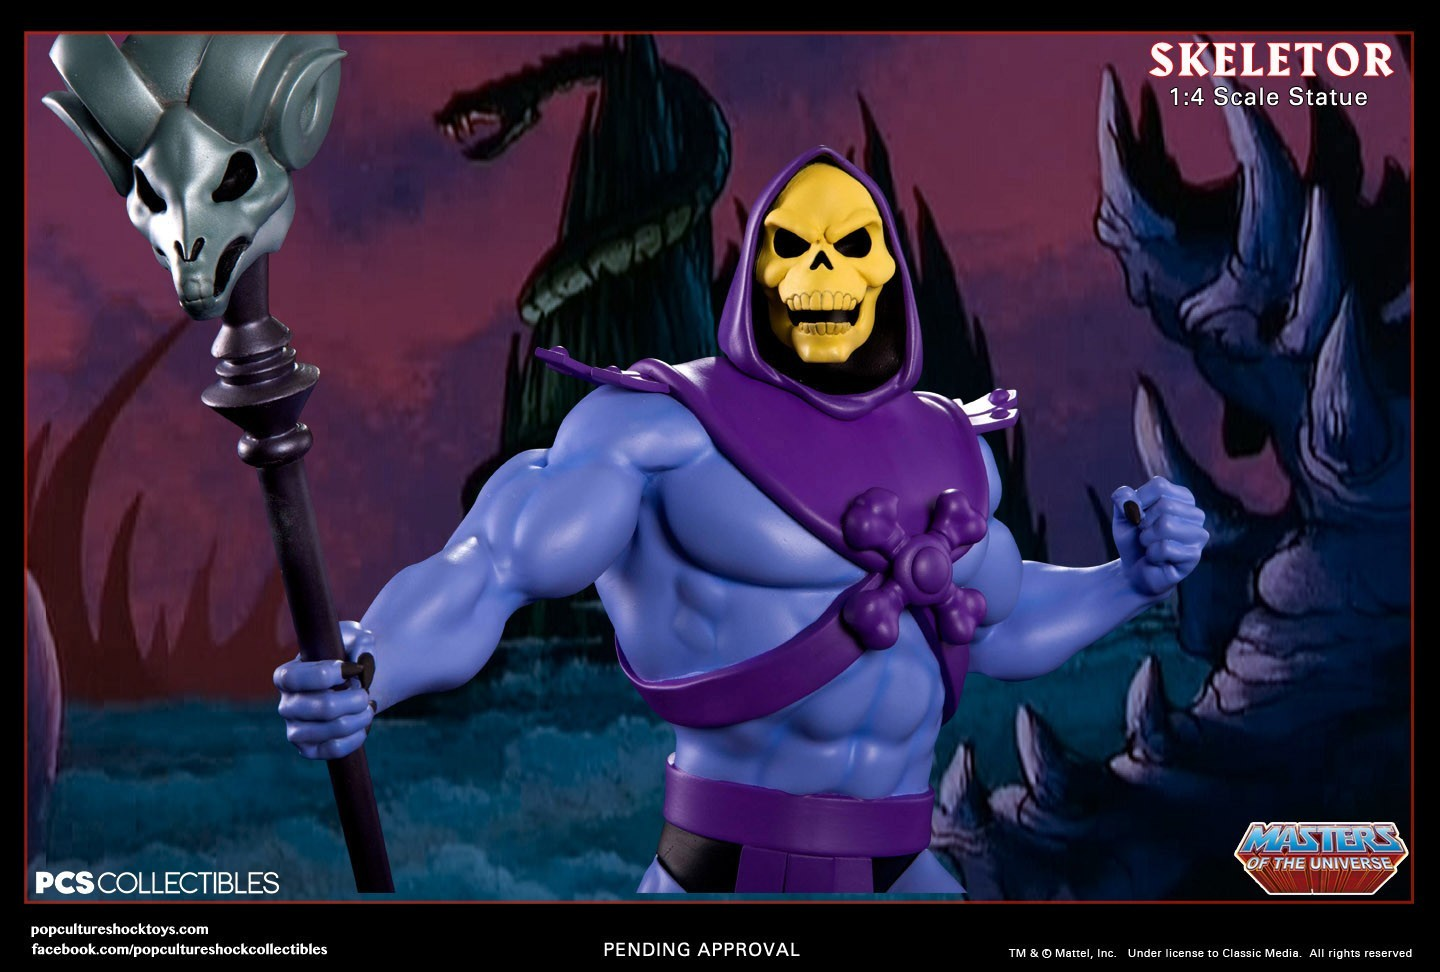 Alejandro pereira skeletor media v